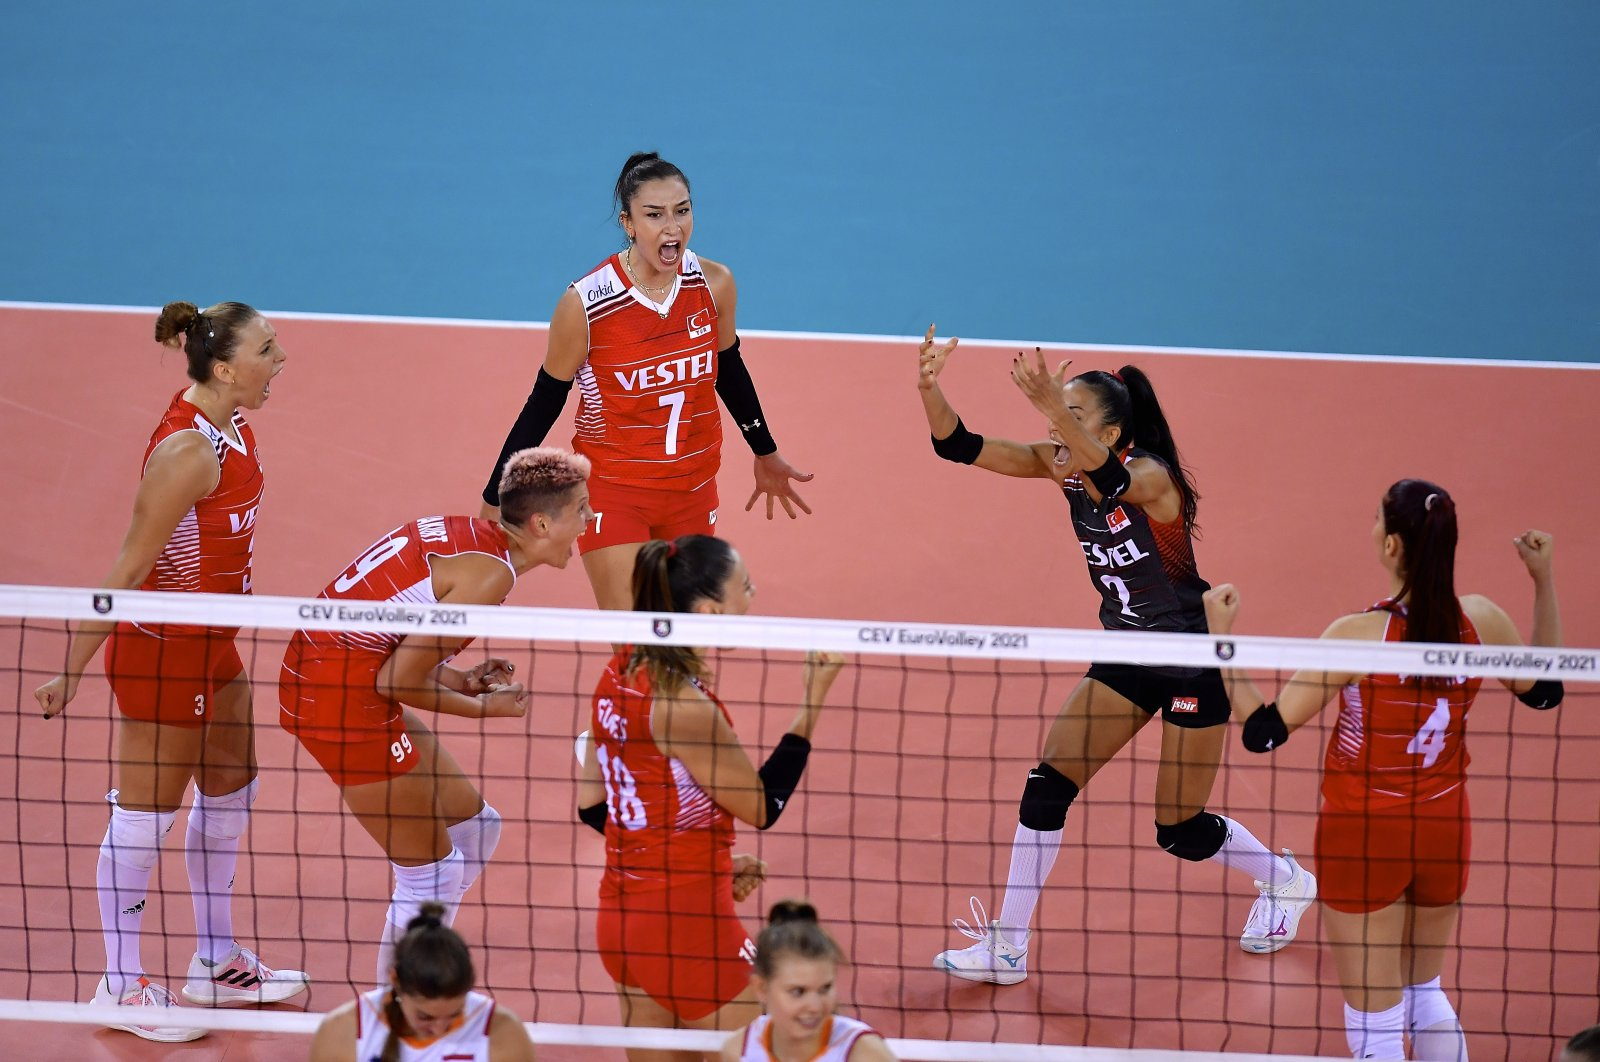 Turkish national volleyball team players celebrate after scoring during a EuroVolley 2021 group stage match at the BT Arena in Romania's Cluj-Napoca on Aug. 23, 2021 (AA Photo)